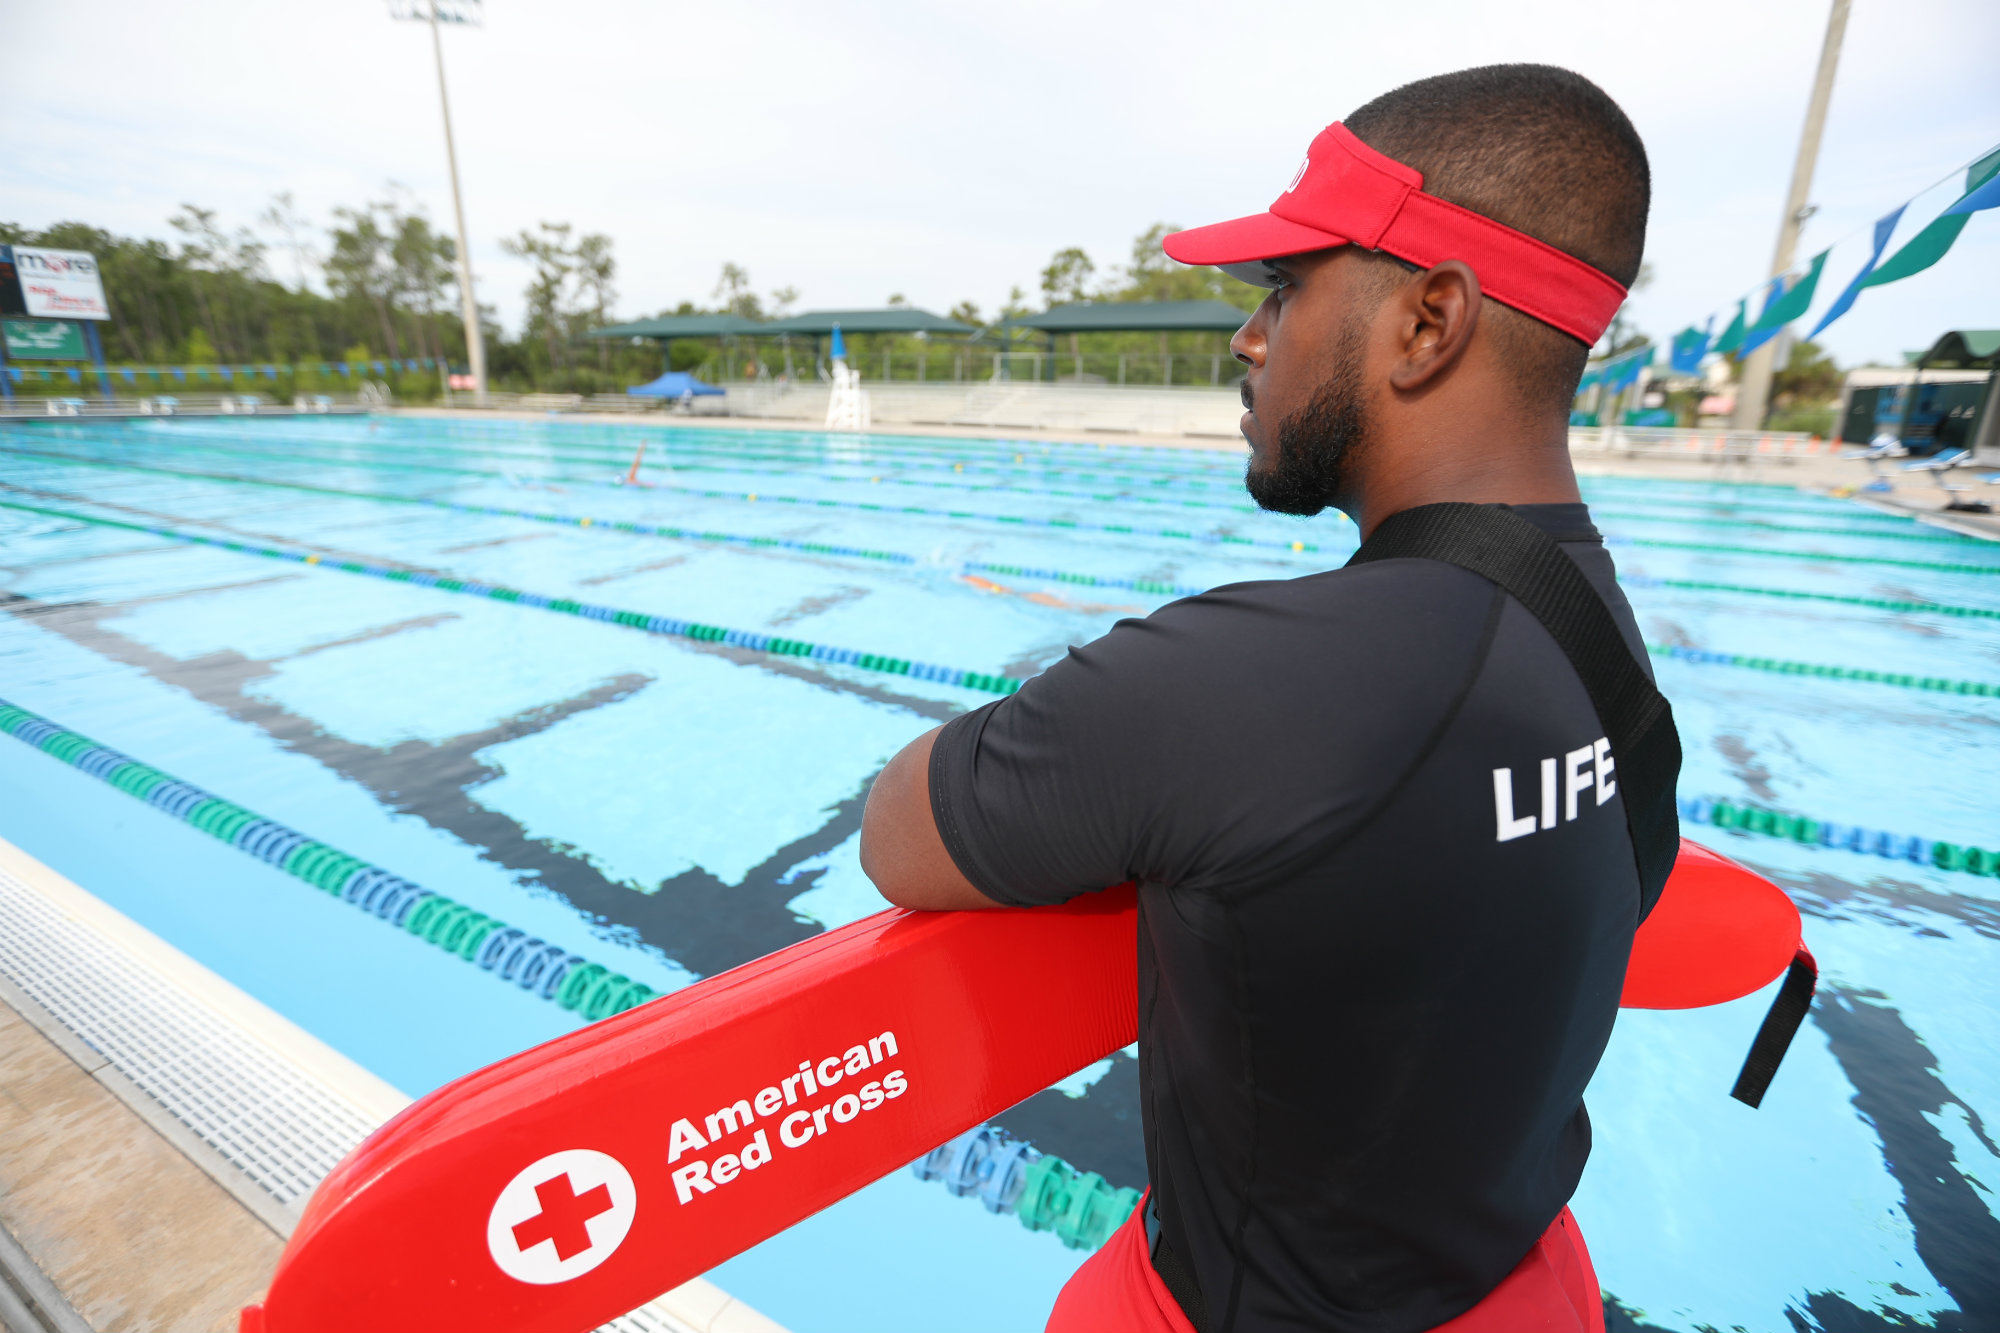 american red cross makes lifeguard program revisions aquatics